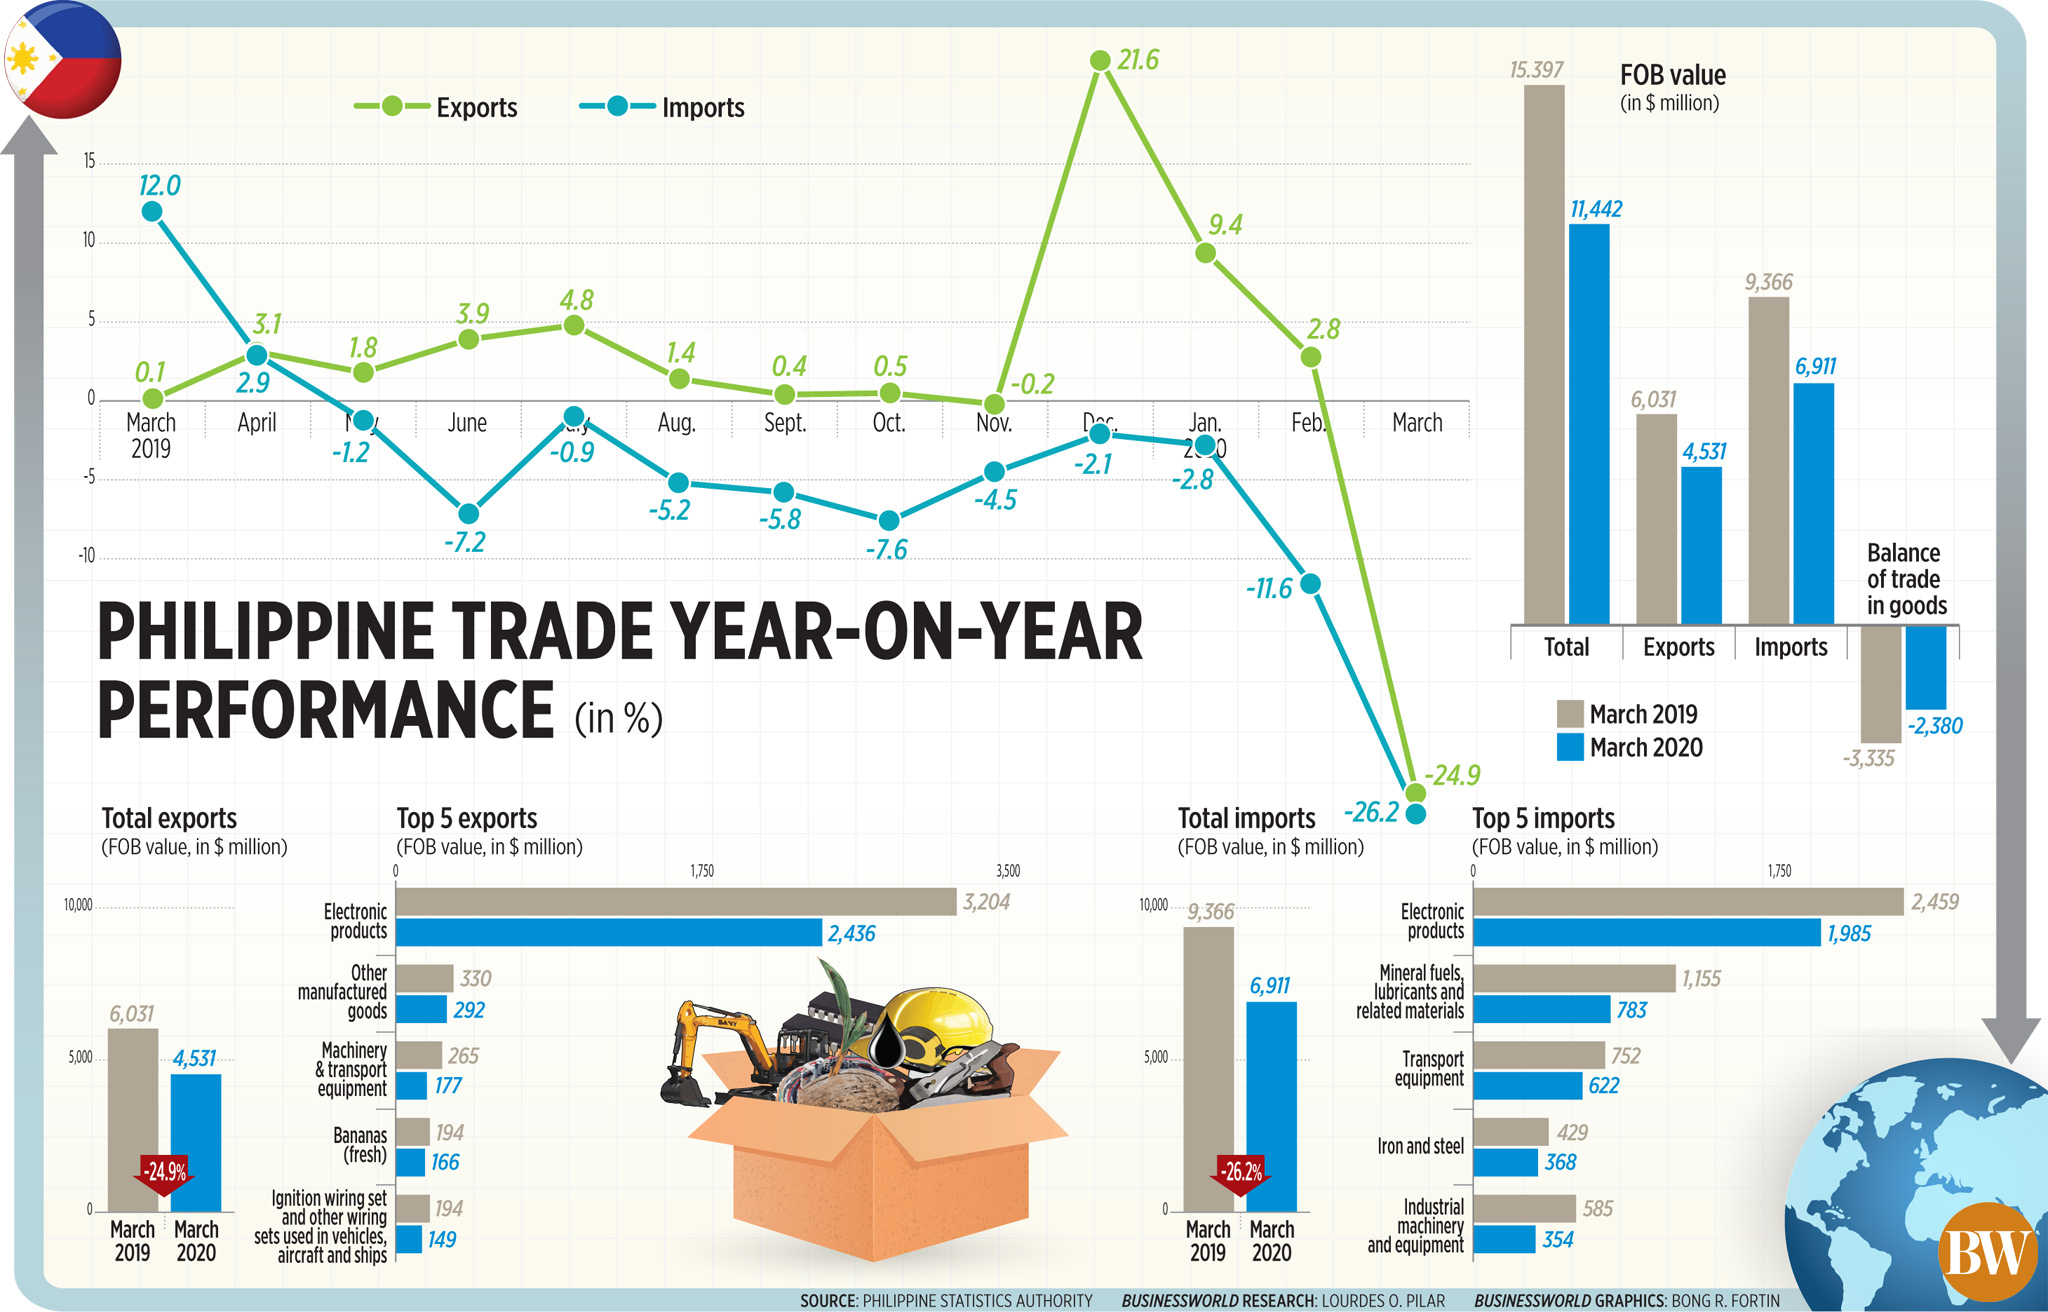 Philippine trade year-on-year performance (March 2020)